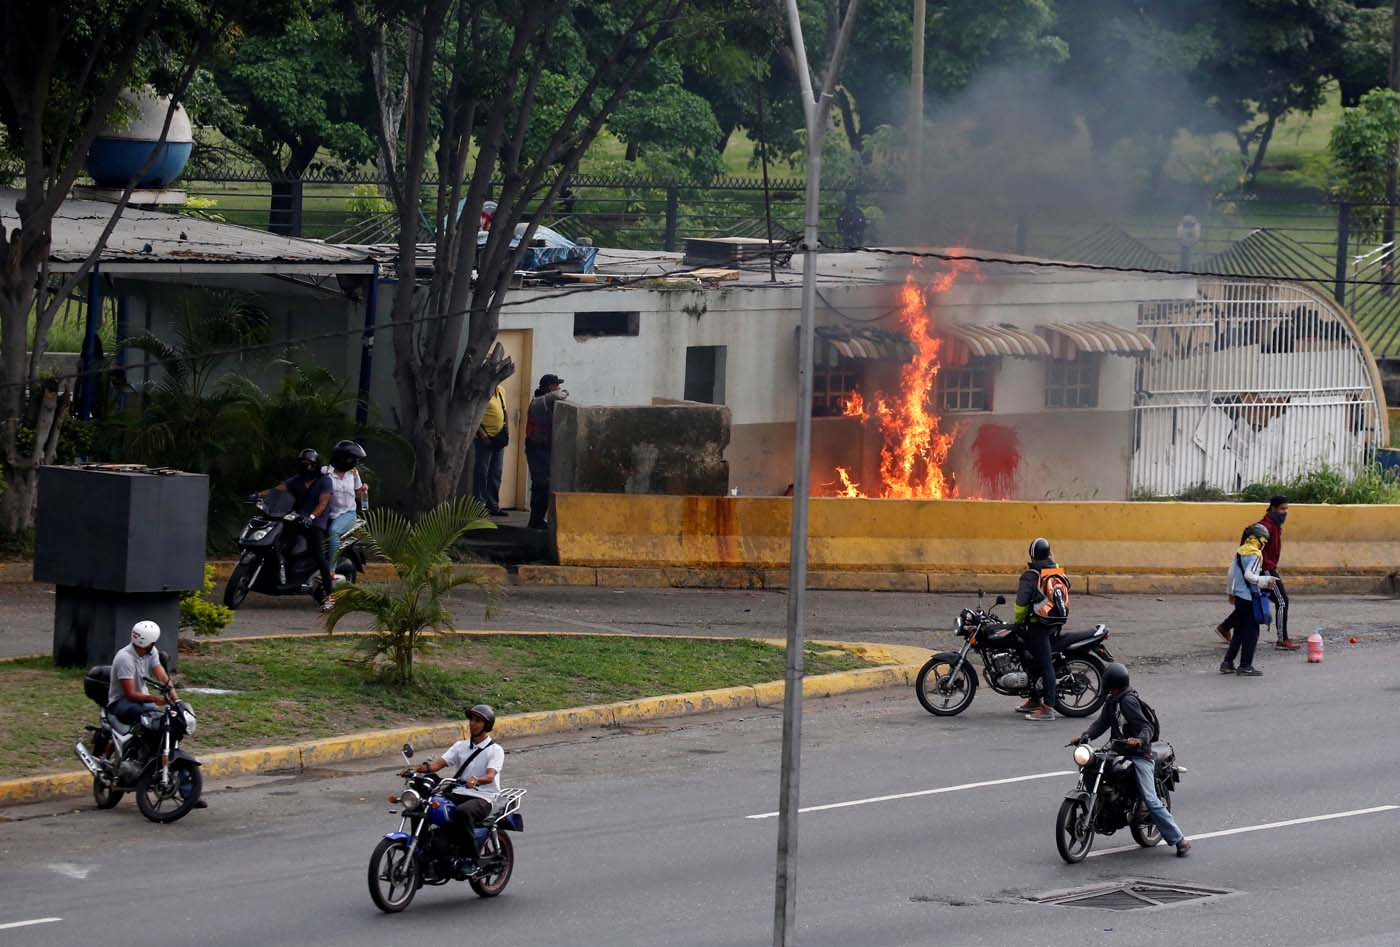 Opposition supporters set a building on fire while clashing with riot police during a rally against Venezuelan President Nicolas Maduro in Caracas, Venezuela, May 8, 2017. REUTERS/Carlos Garcia Rawlins